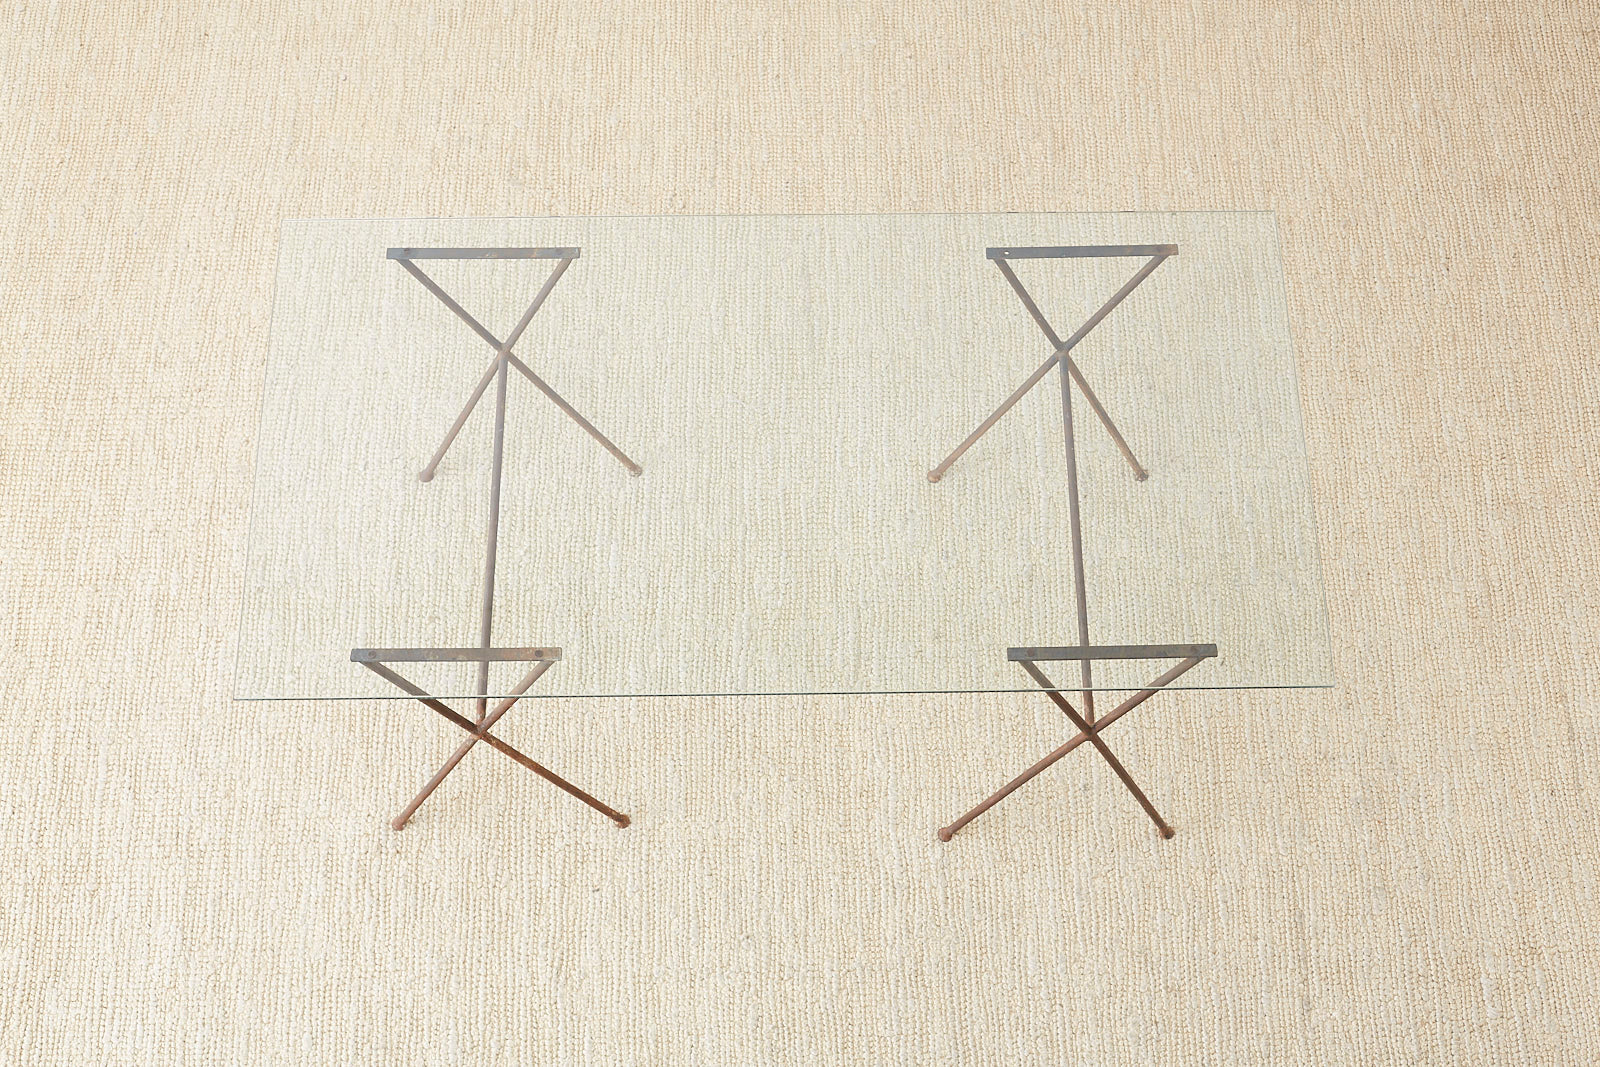 Midcentury Glass Table with Iron X Form Sawhorse Legs